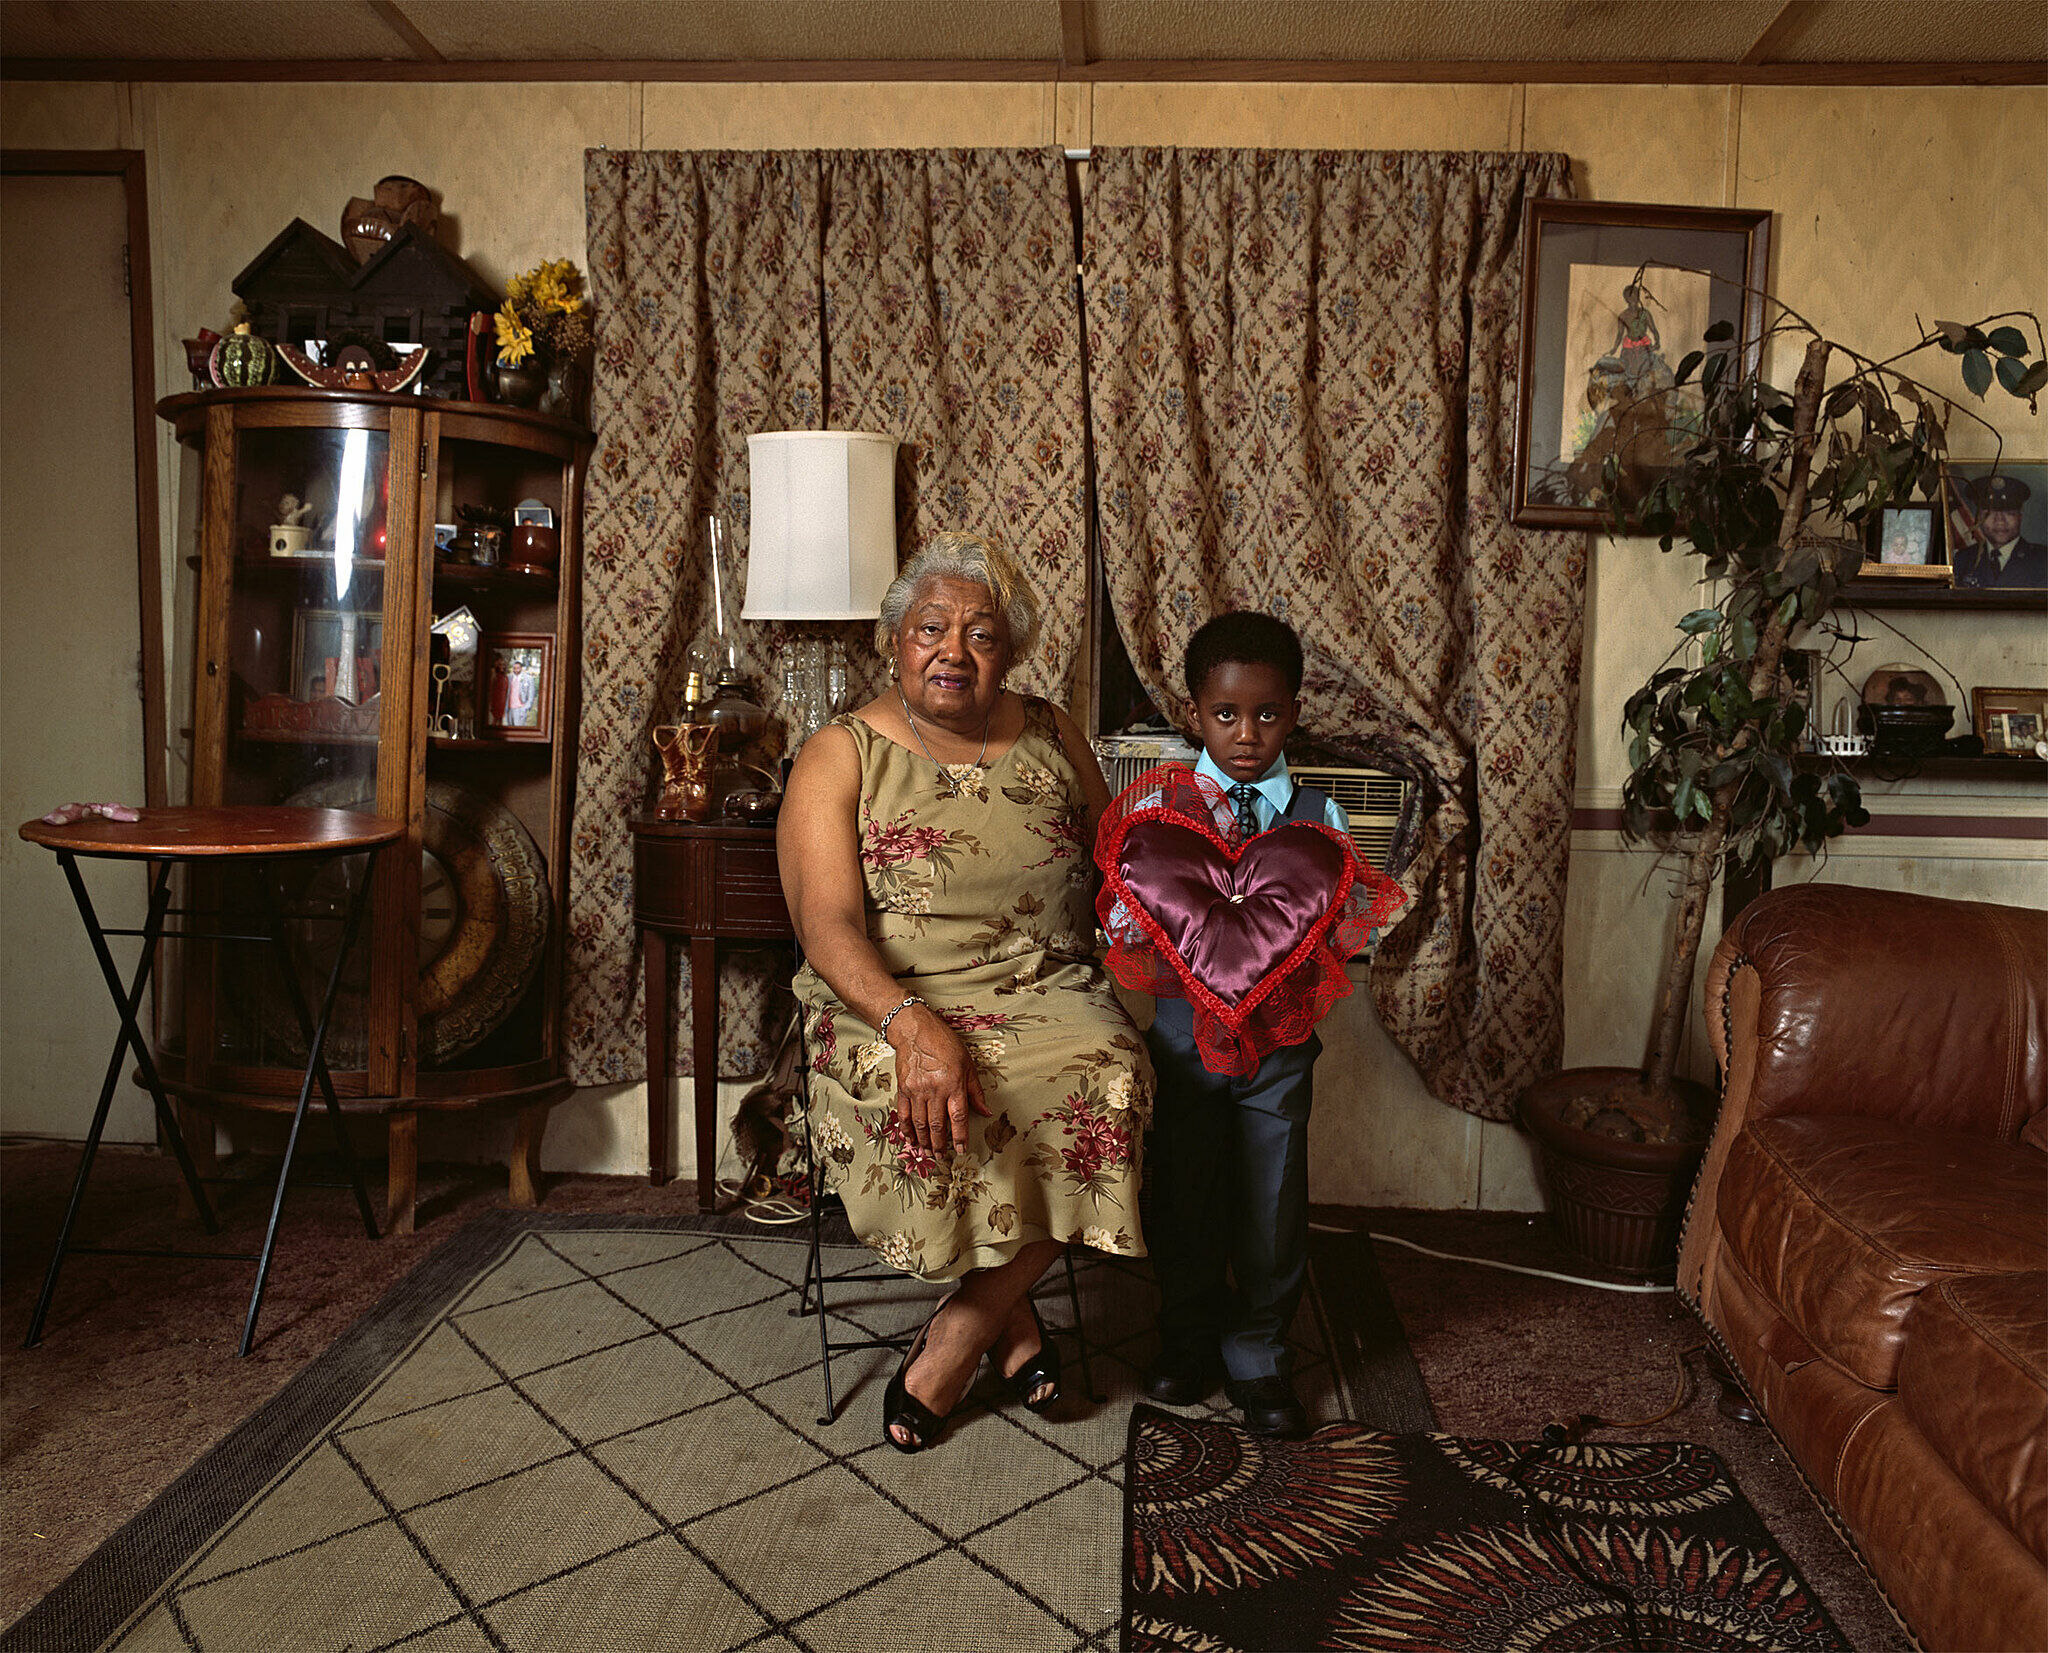 Portrait of a woman and a young boy in a living room